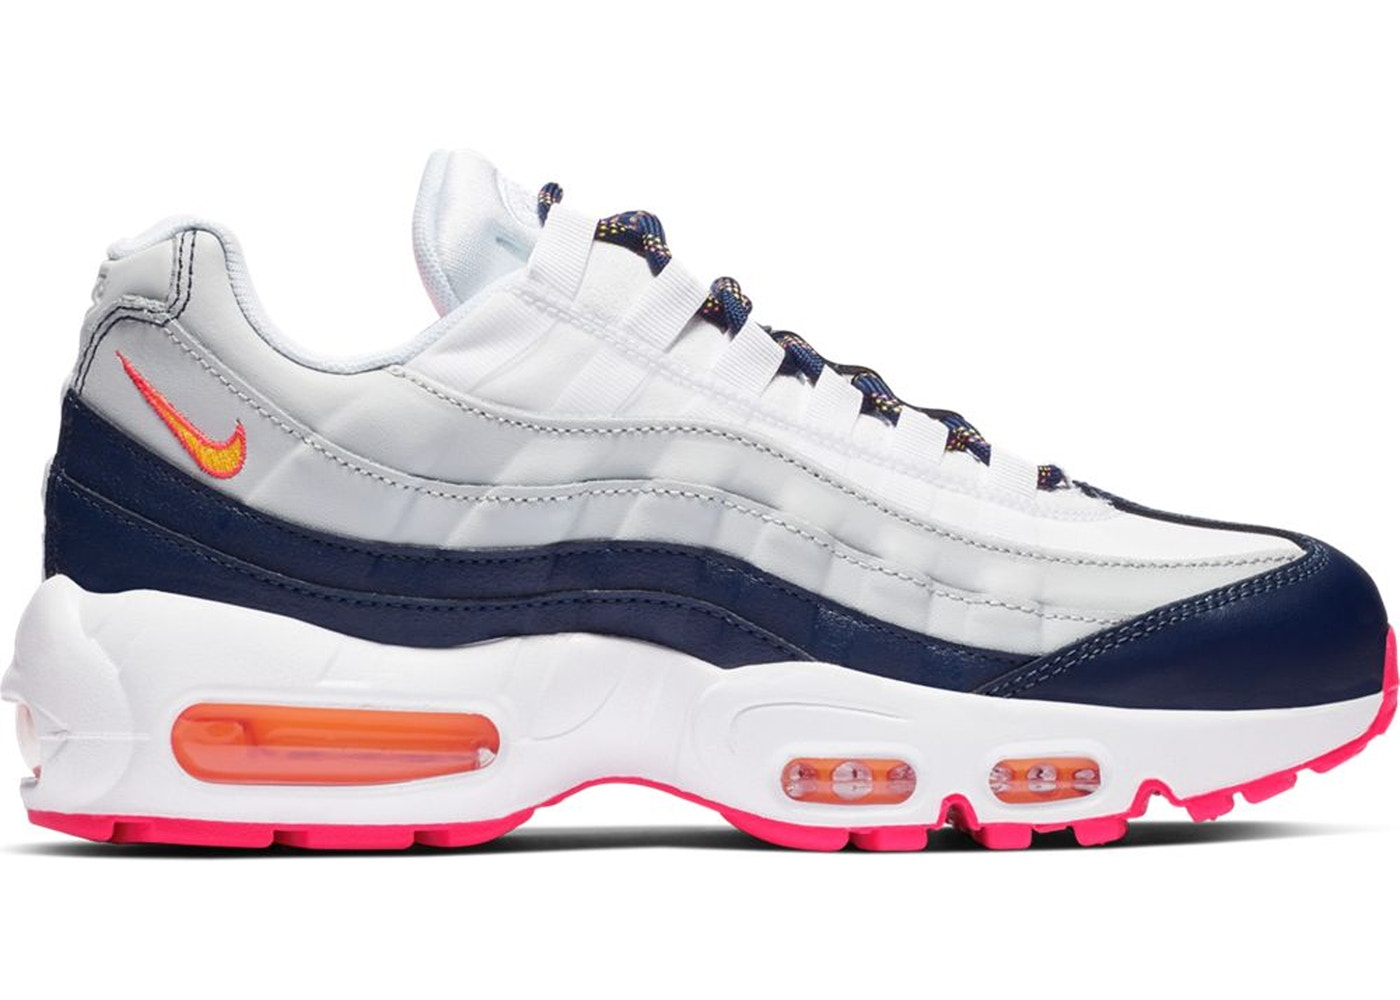 07fdebdc09 Nike Air Max 95 Shoes - Release Date